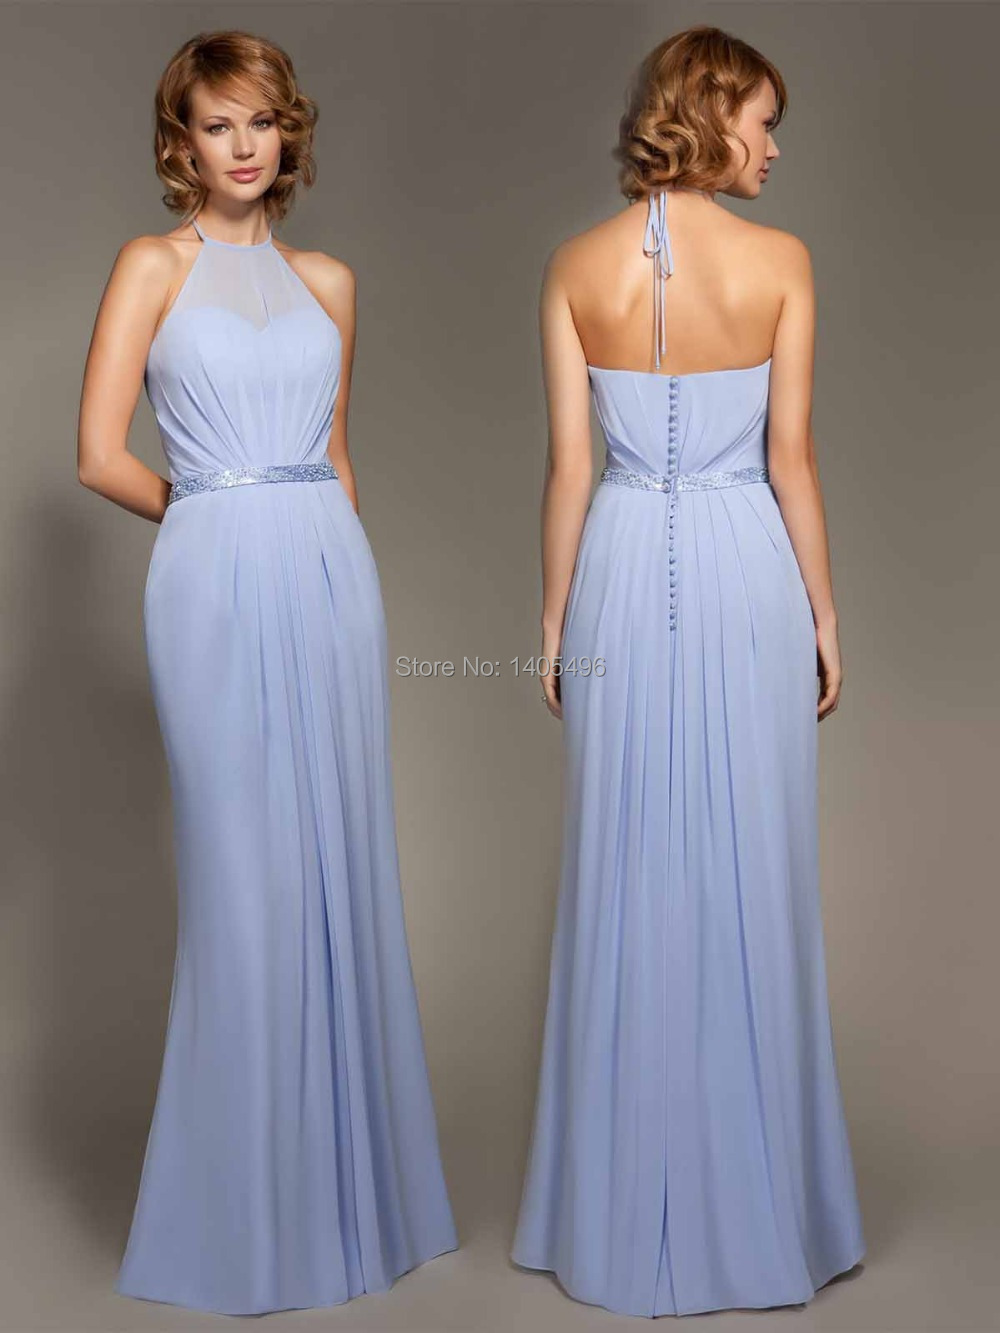 Long bridesmaid dress diaphanous neck chiffon halter high neck long bridesmaid dress diaphanous neck chiffon halter high neck prom dress cheap beach bridesmaid gown with pleat and beaded sash in bridesmaid dresses from ombrellifo Image collections